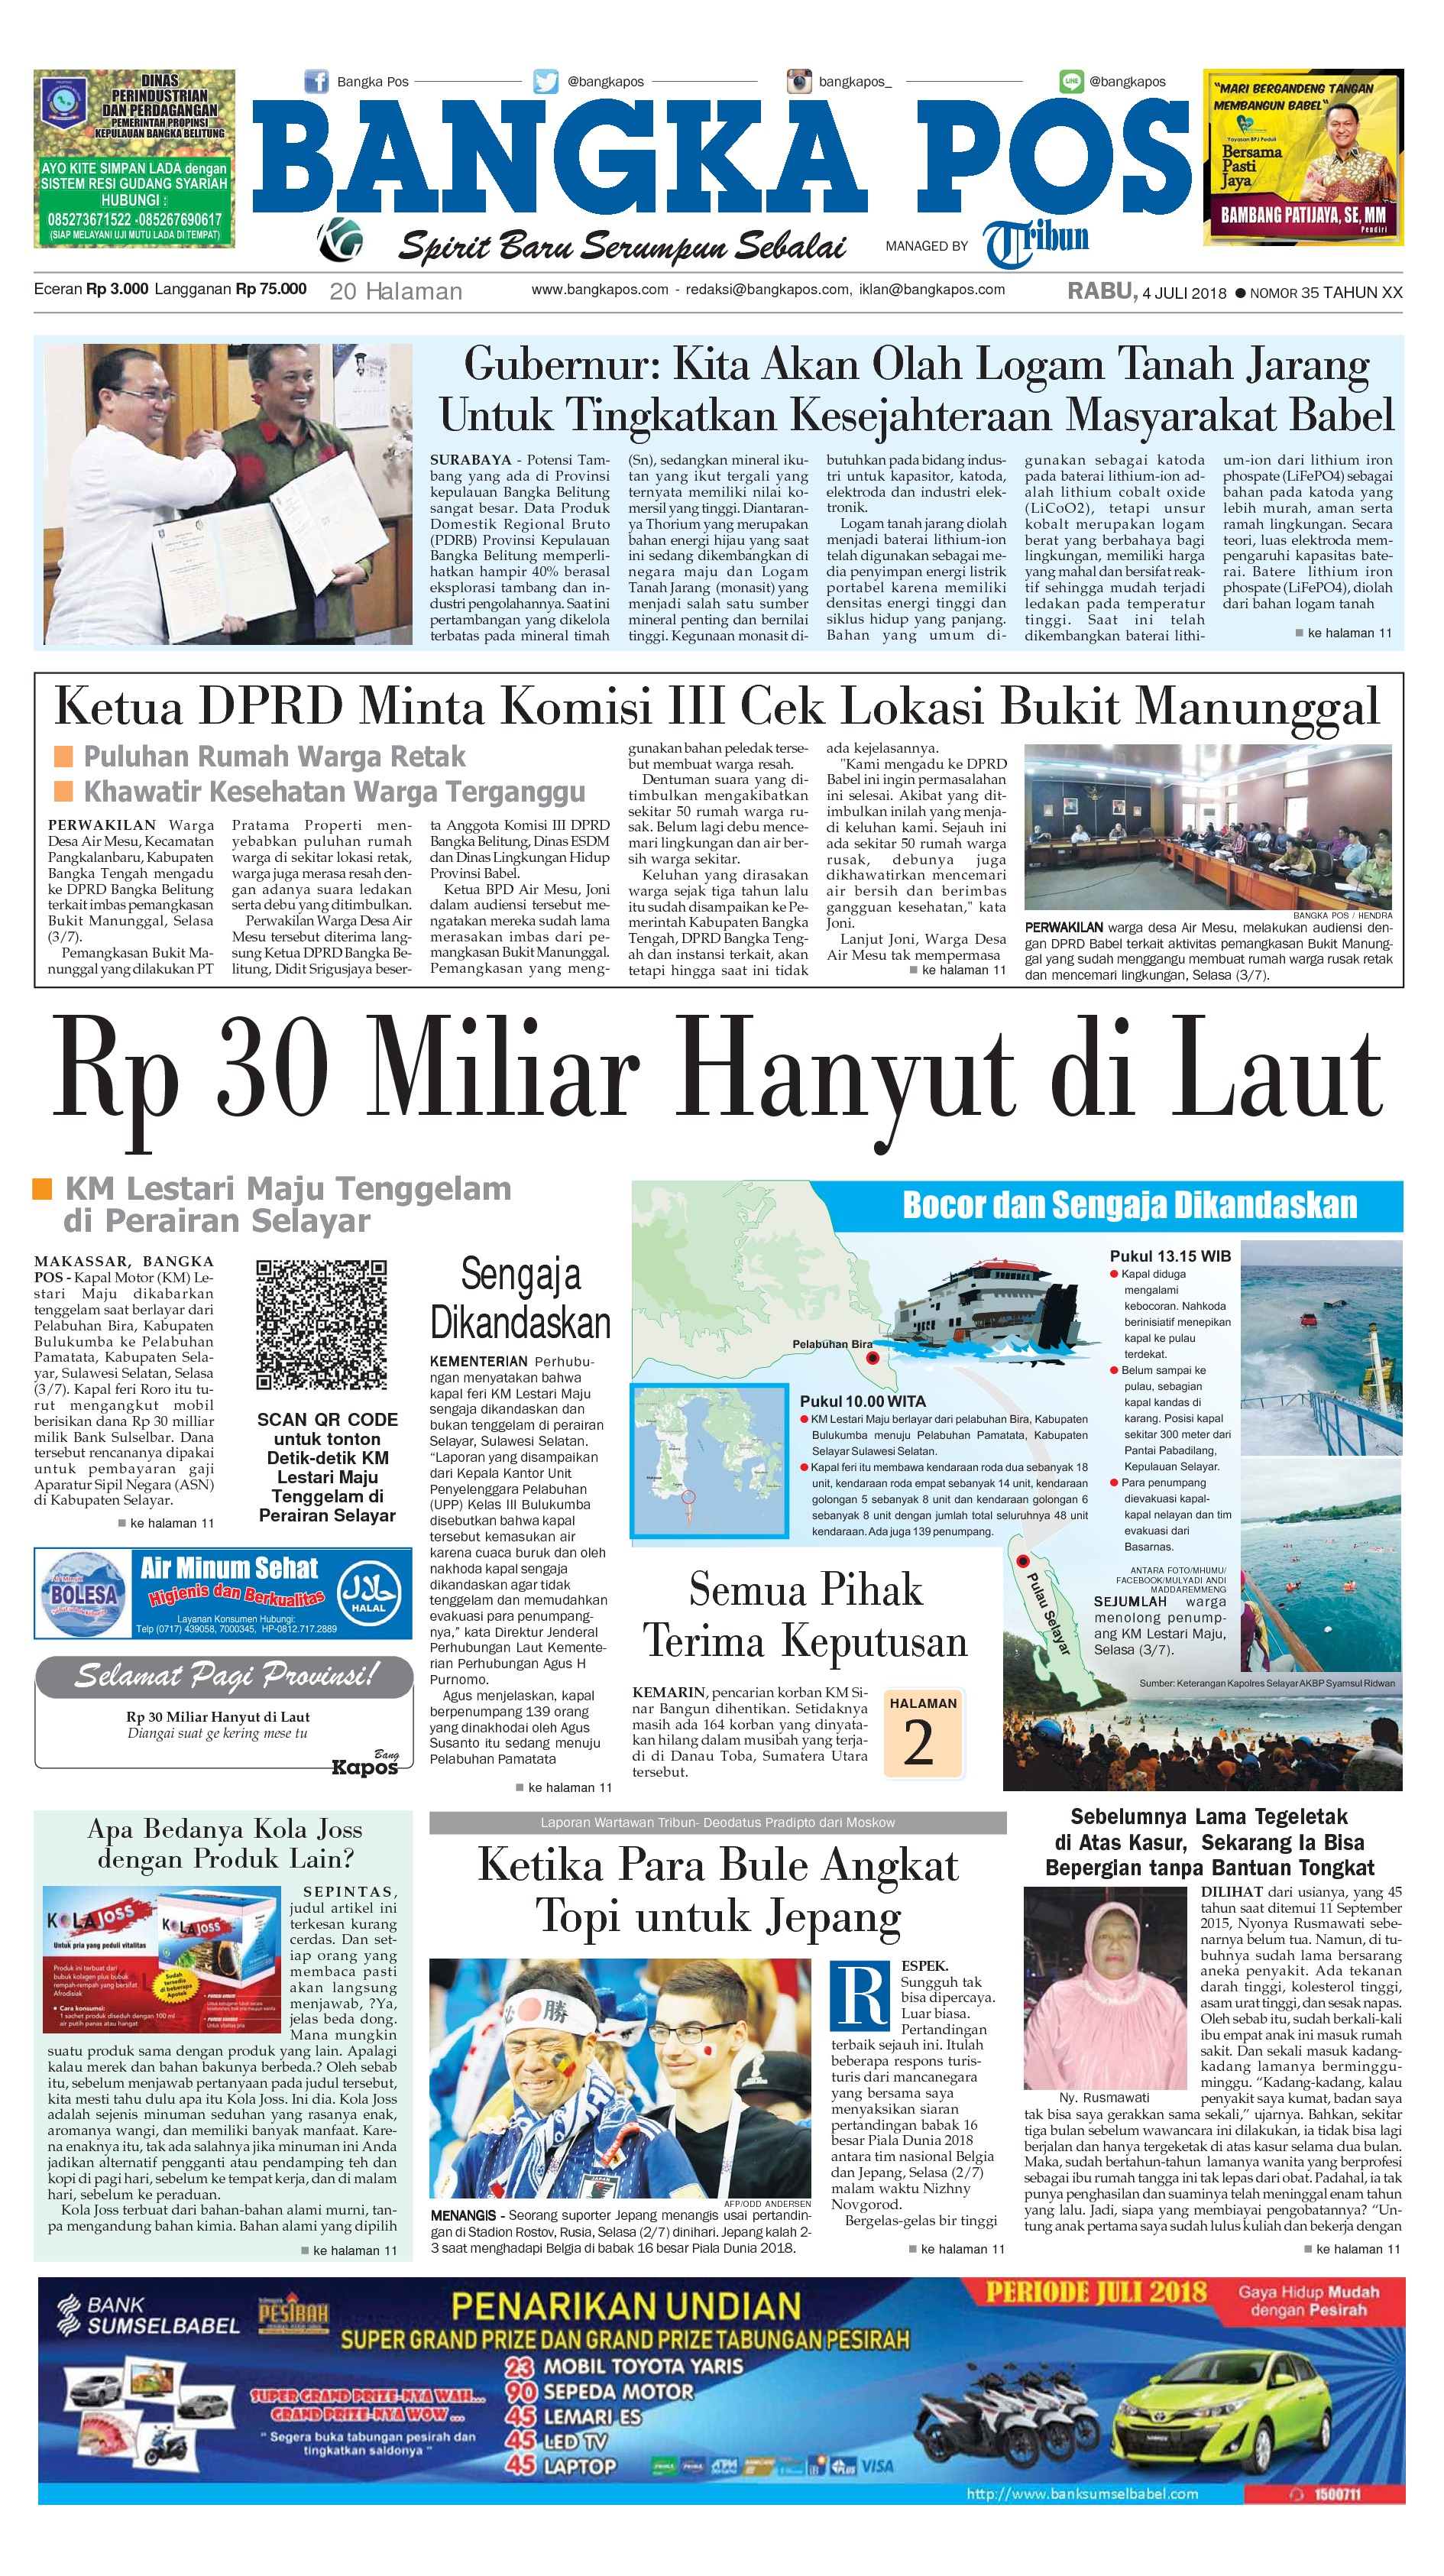 Bangka Pos Newspaper 04 July 2018 Gramedia Digital